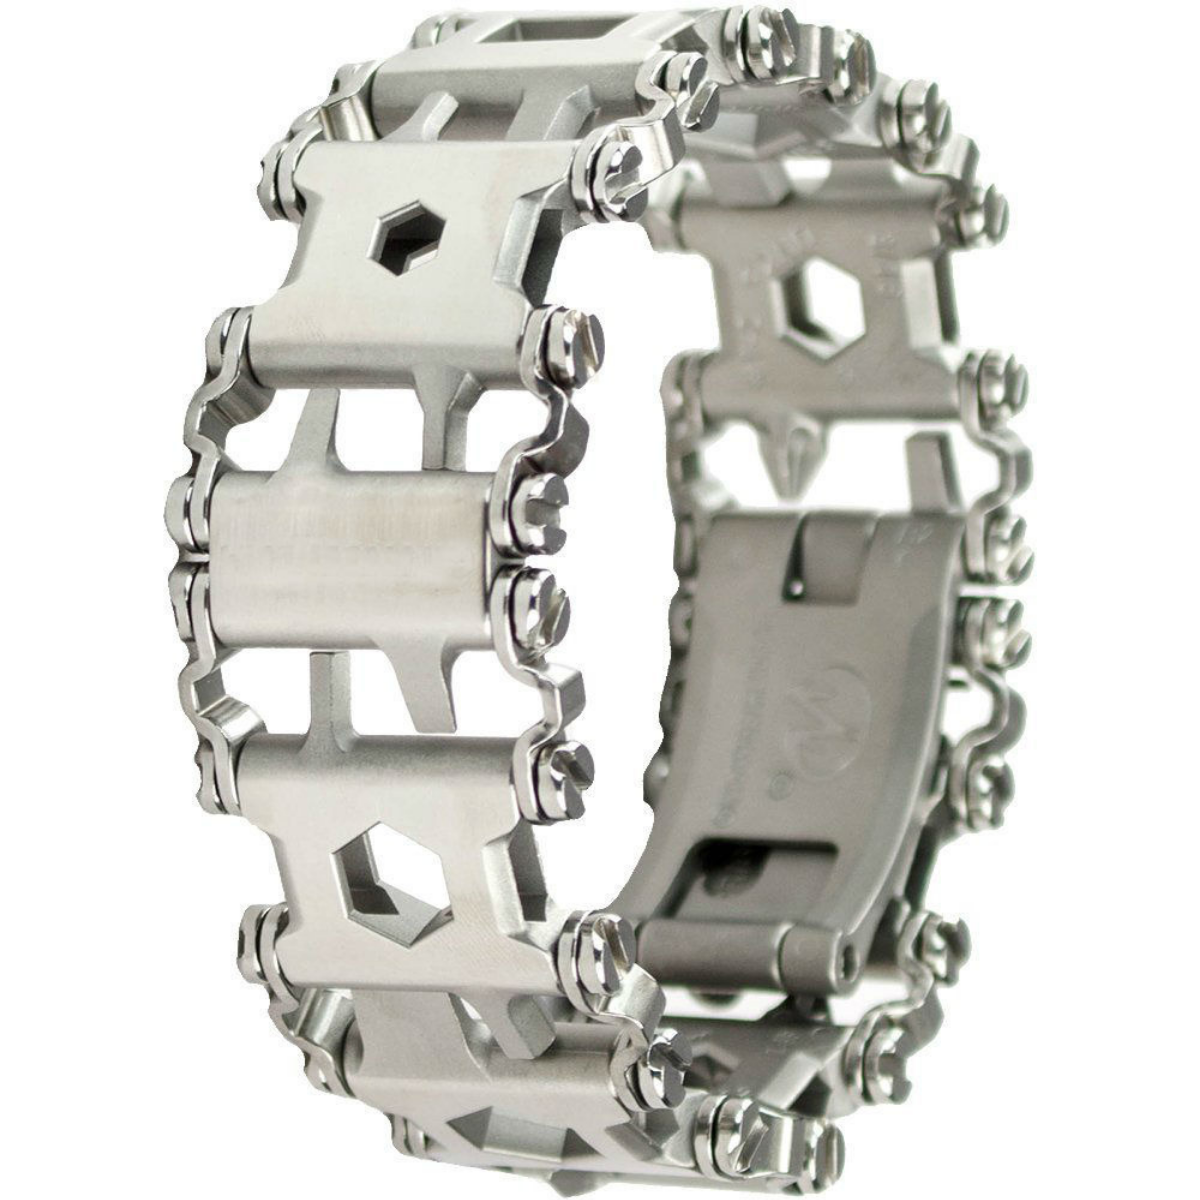 Amazing Multi-Tool Survival Bracelet